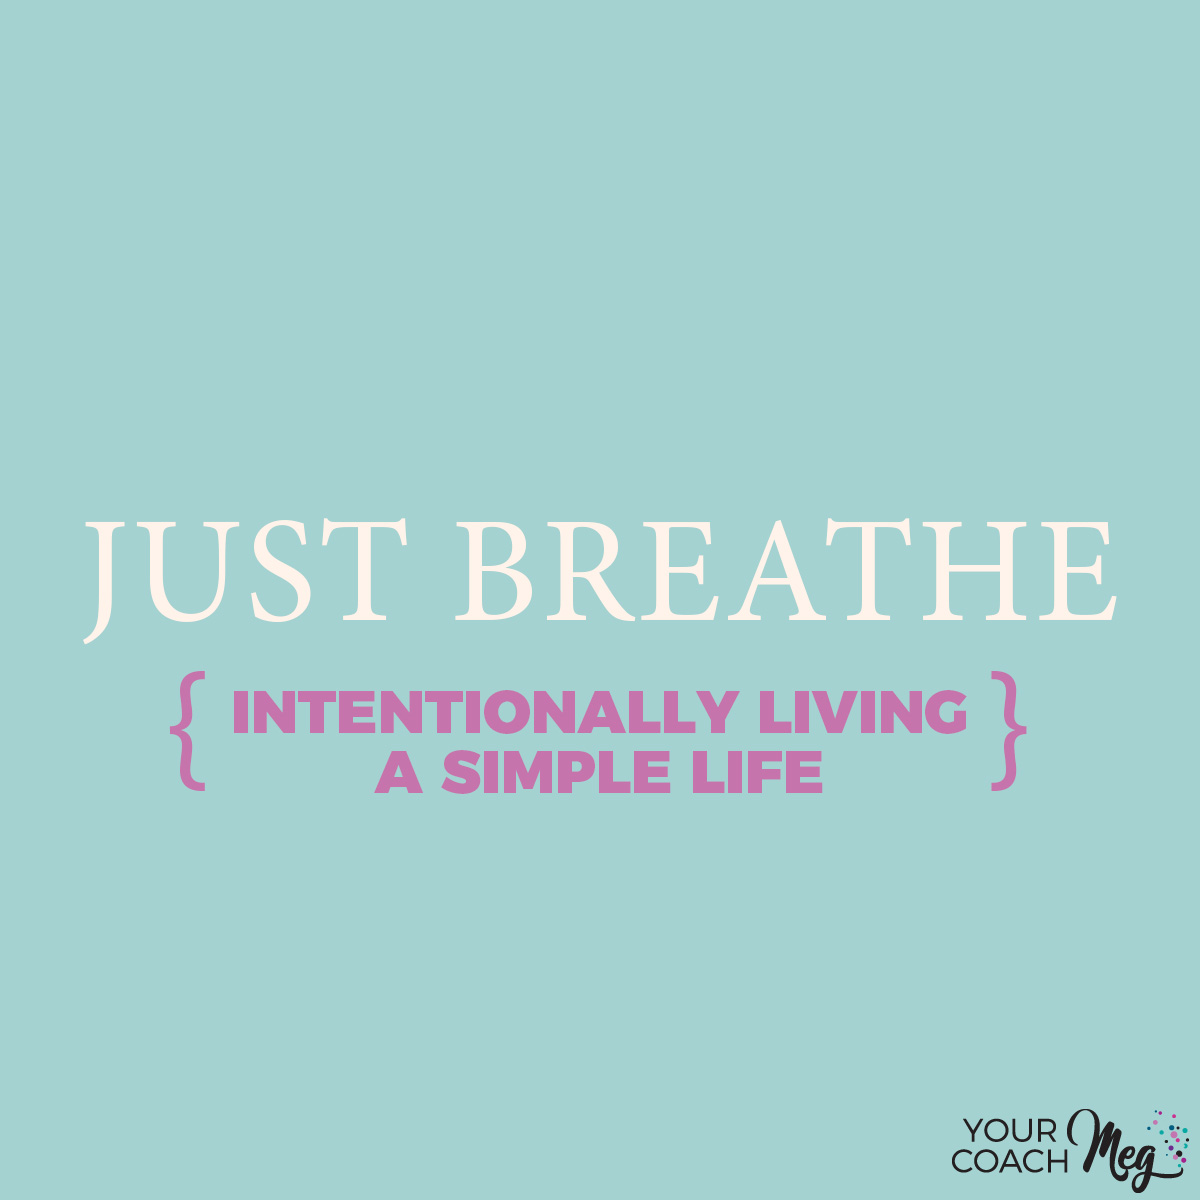 Just Breathe: intentionally living a simple life